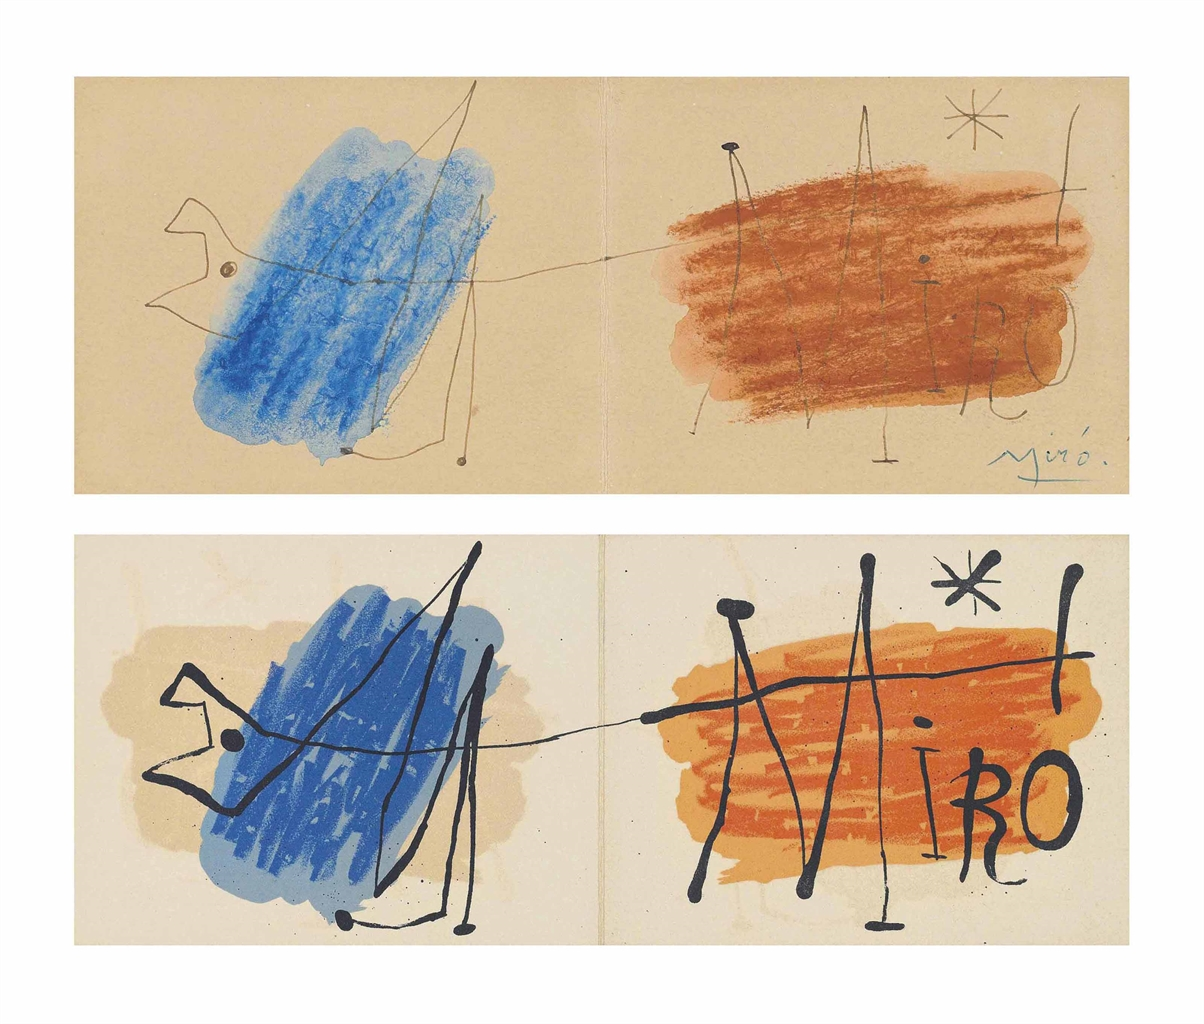 Joan Miro-Invitation Exhibition Galerie Matarasso Nice 1957: Preparatory drawing; Exhibition at the Galerie Matarasso-1957